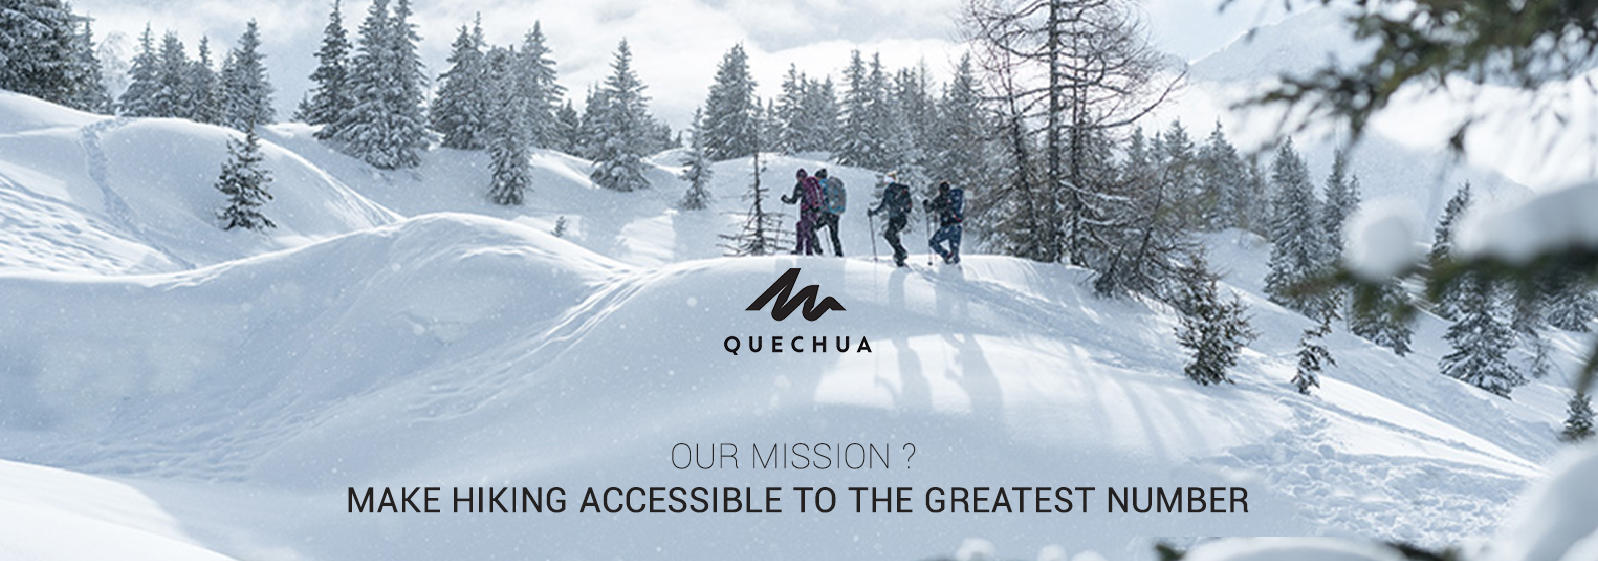 hiking_accessible_mission_quechua